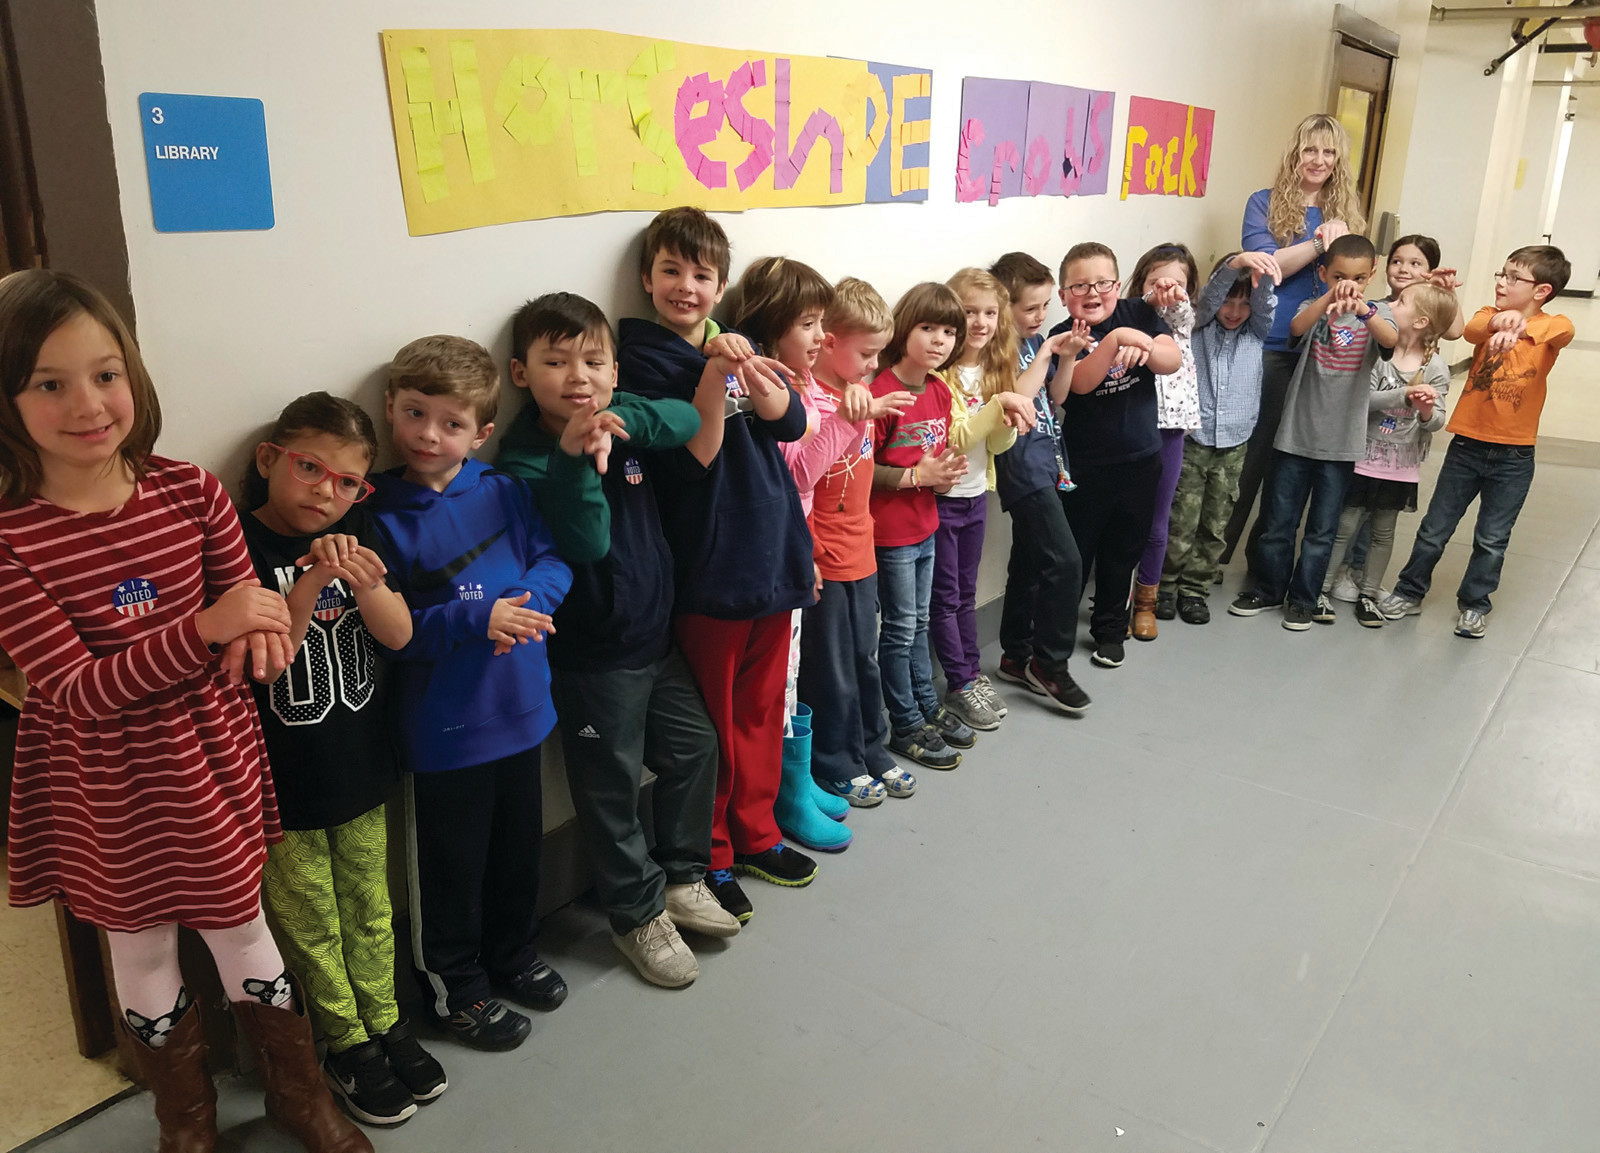 WE VOTED: First-graders lined up outside the school library, finished with their voting, and flashed the special horseshoe crab hand signal that the fourth-graders taught them during their recent lessons.